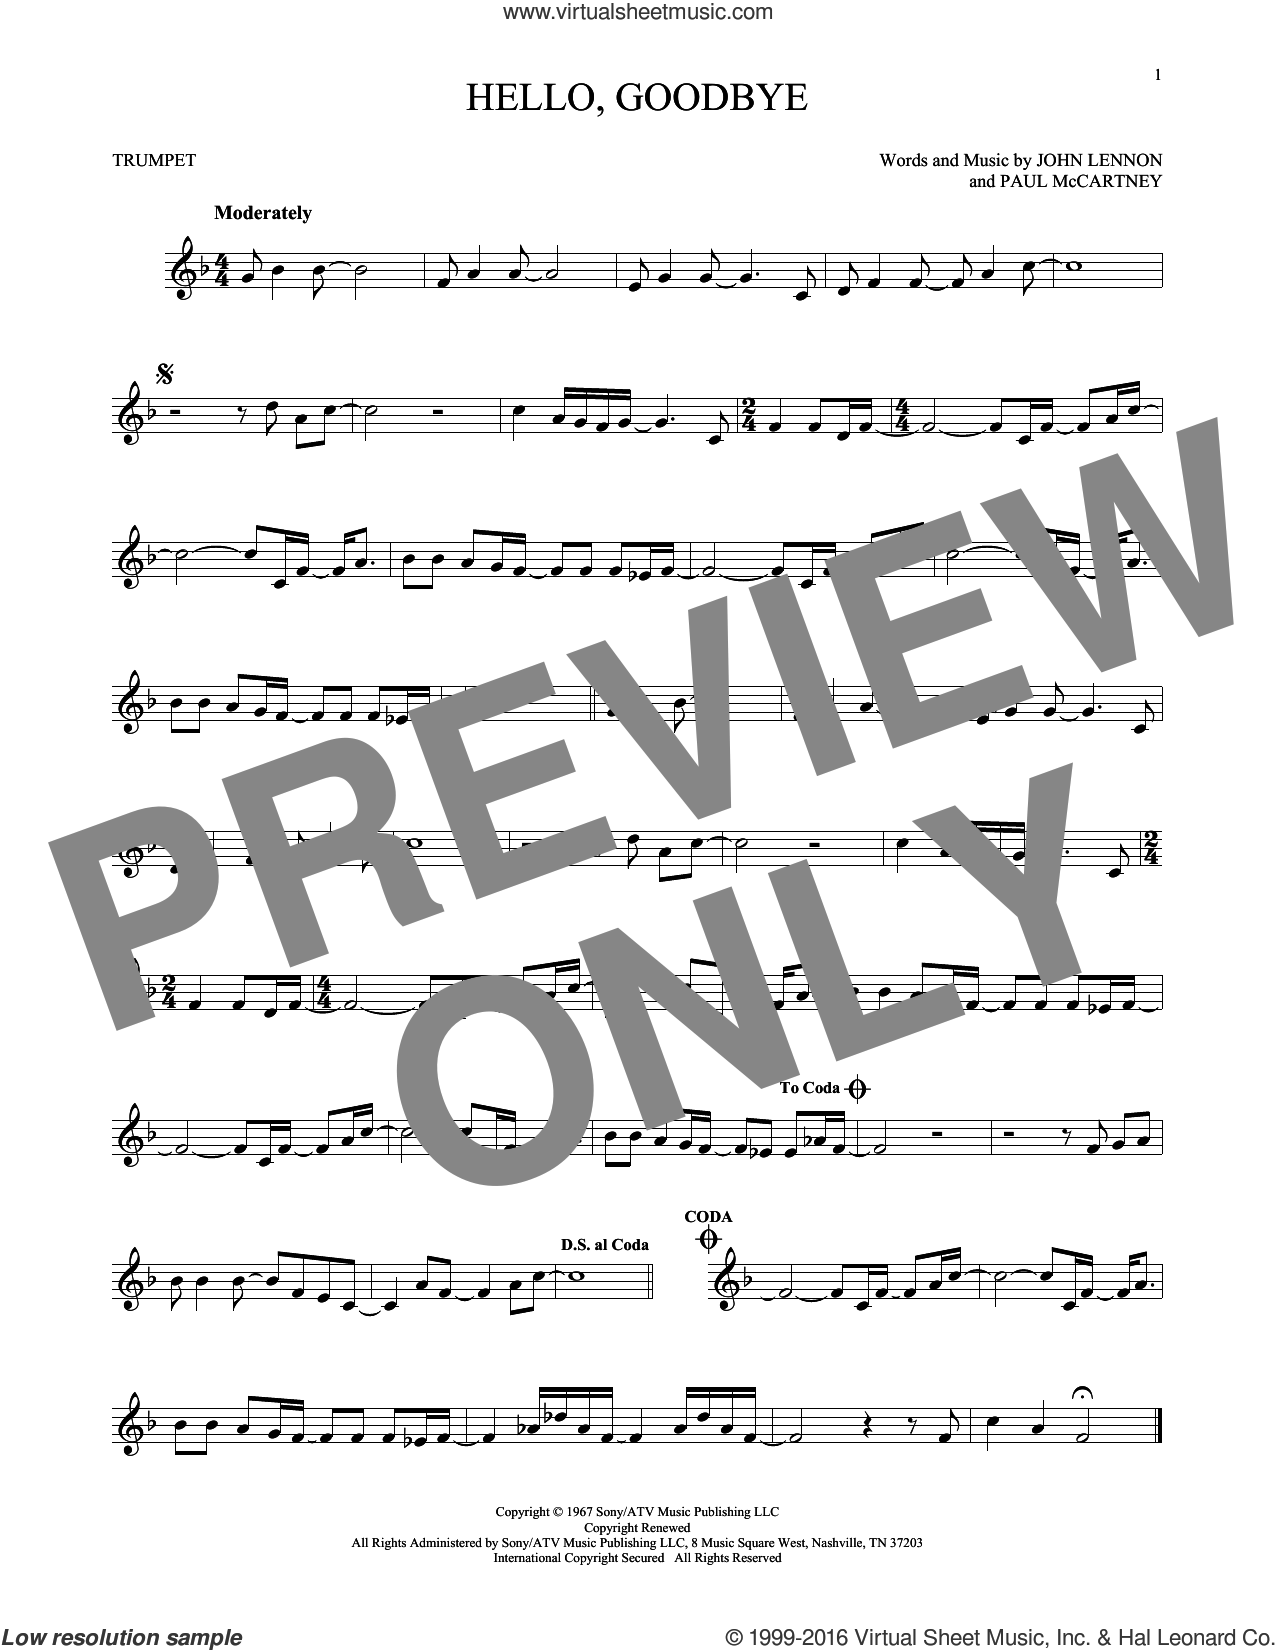 Hello, Goodbye sheet music for trumpet solo by The Beatles, John Lennon and Paul McCartney, intermediate skill level